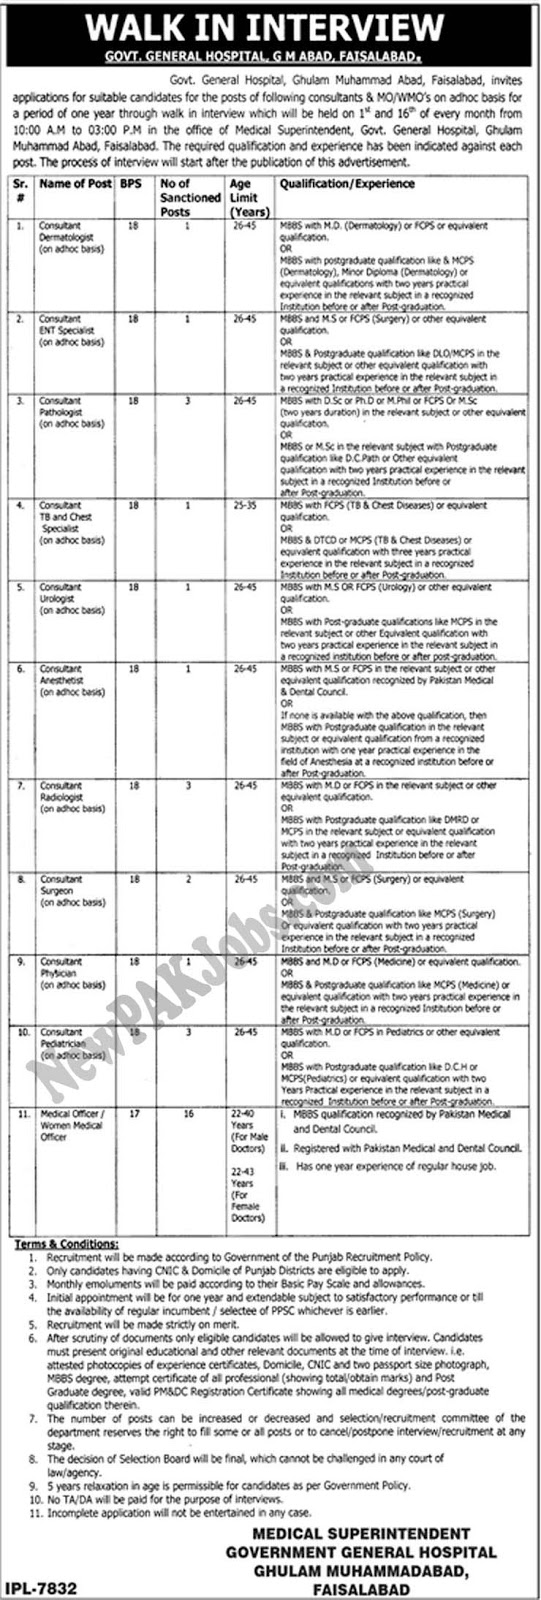 Government General Hospital Faisalabad Jobs, Walk in Interview